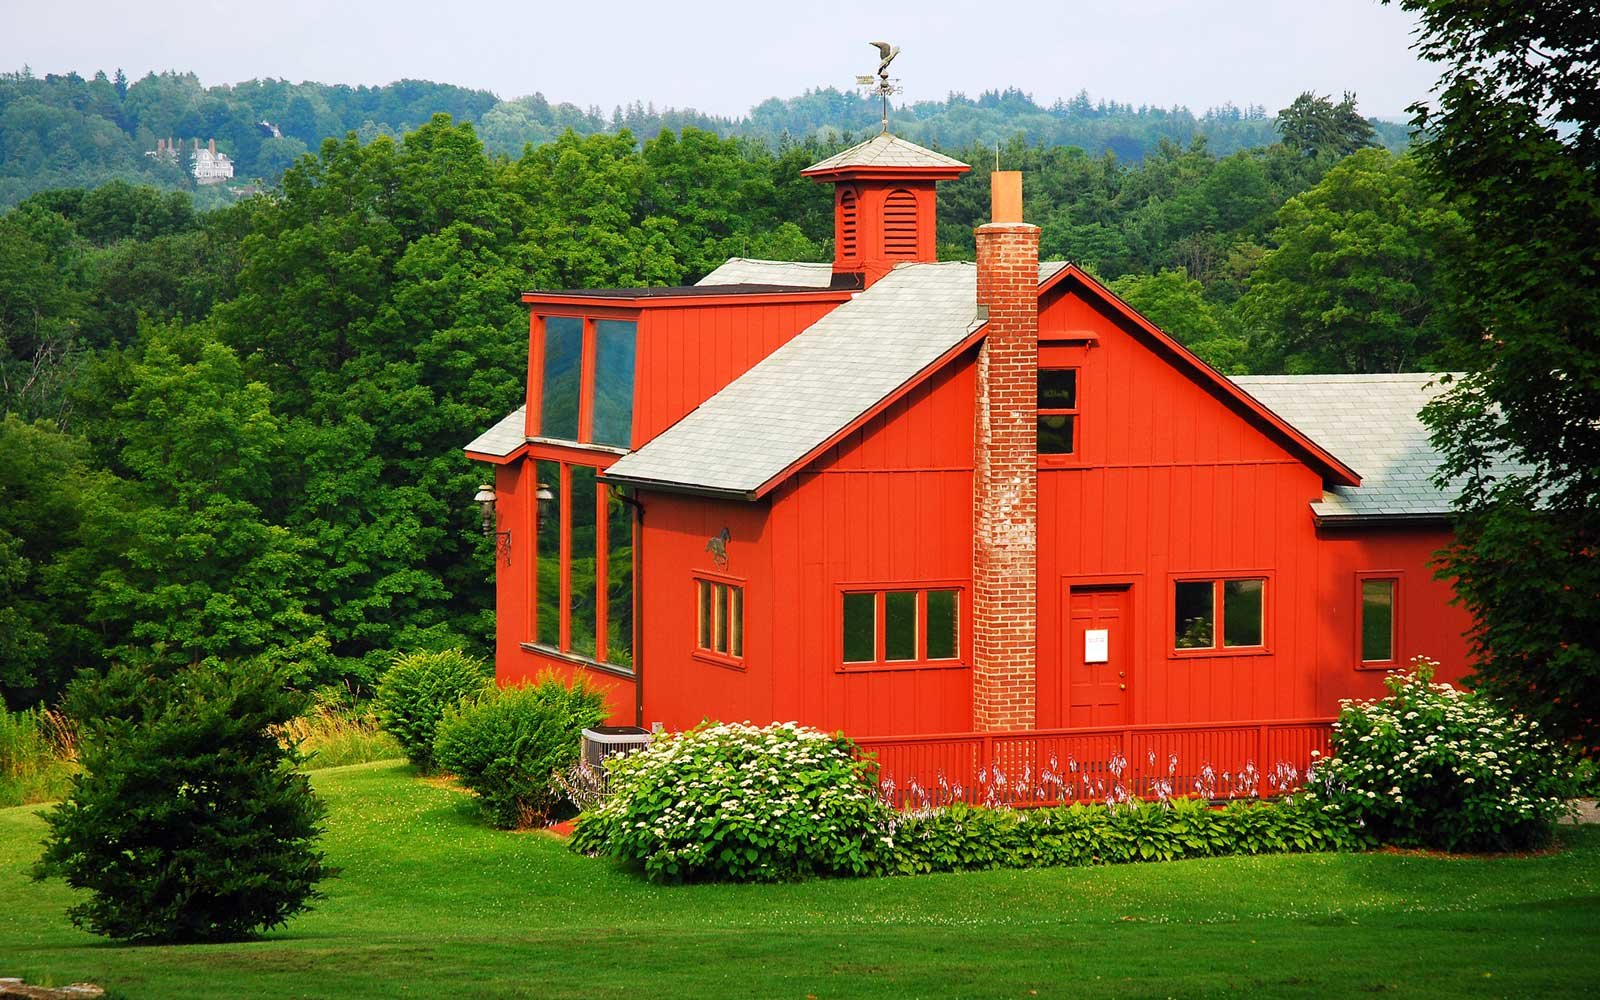 The Norman Rockwell's Studio in the Berkshire Mountains of Massachusetts